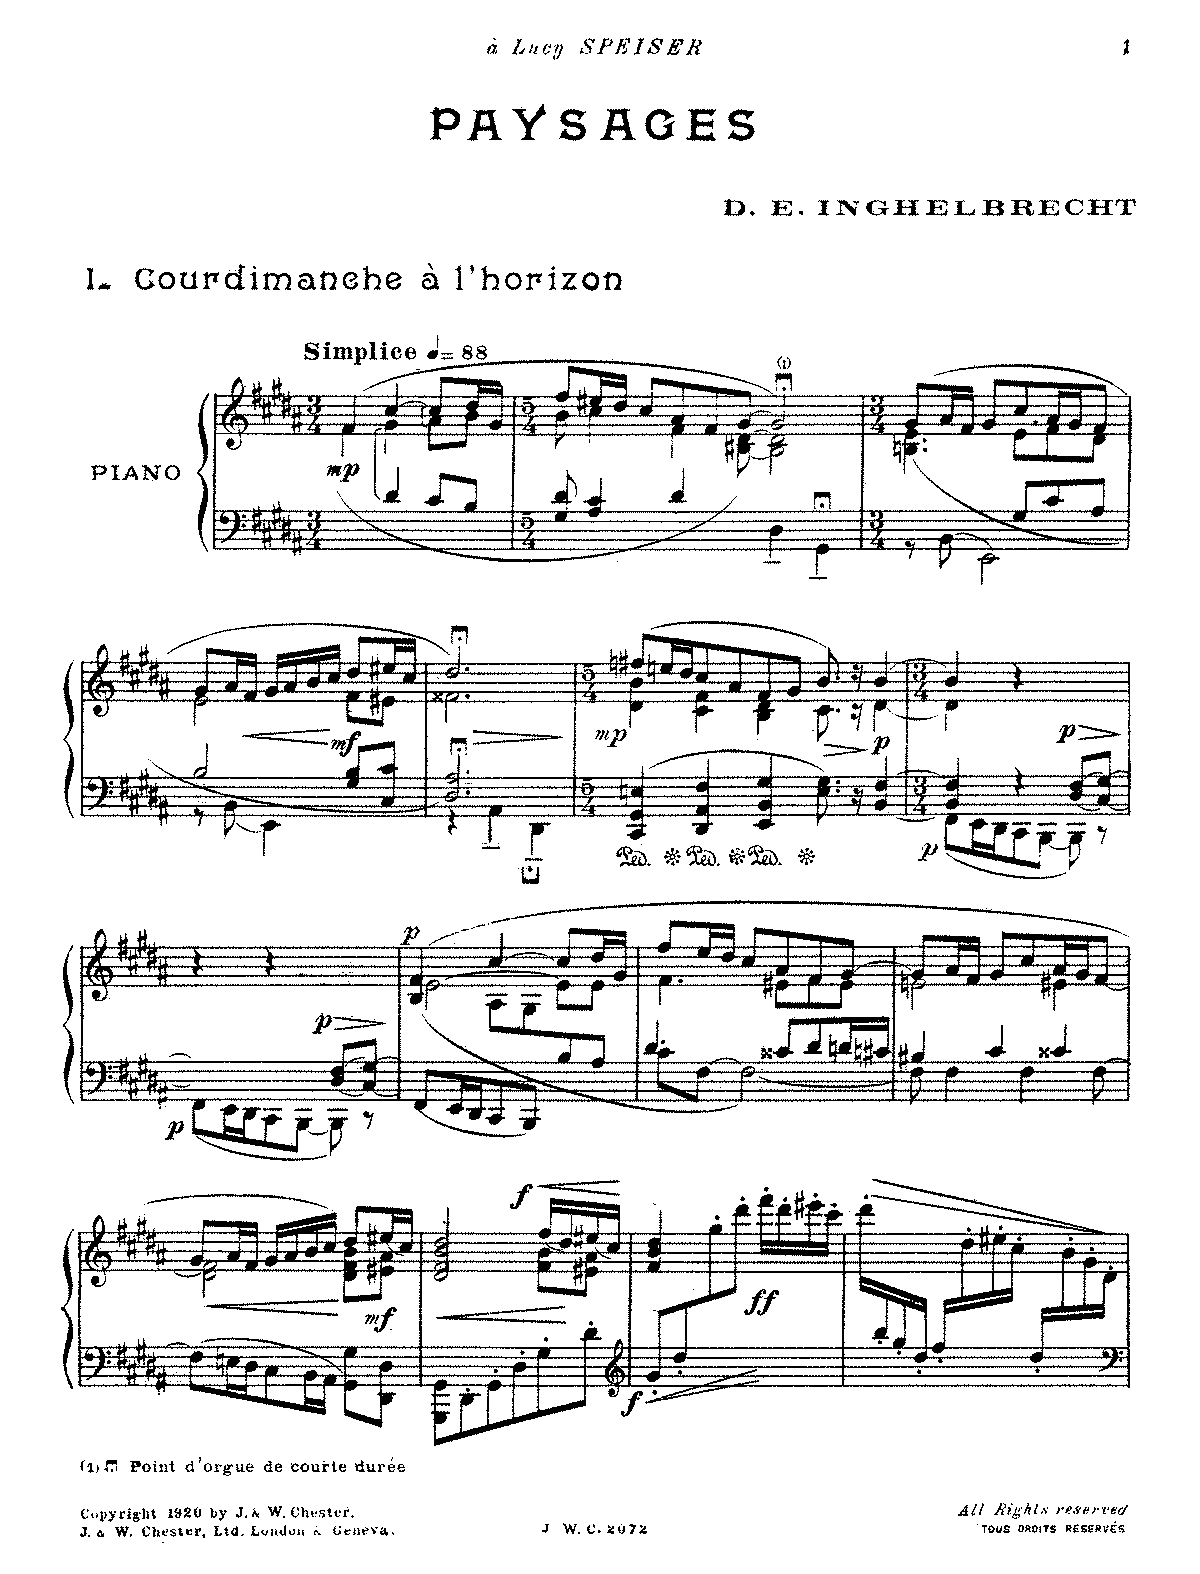 PMLP244574-Inghelbrecht - Paysages (piano).pdf